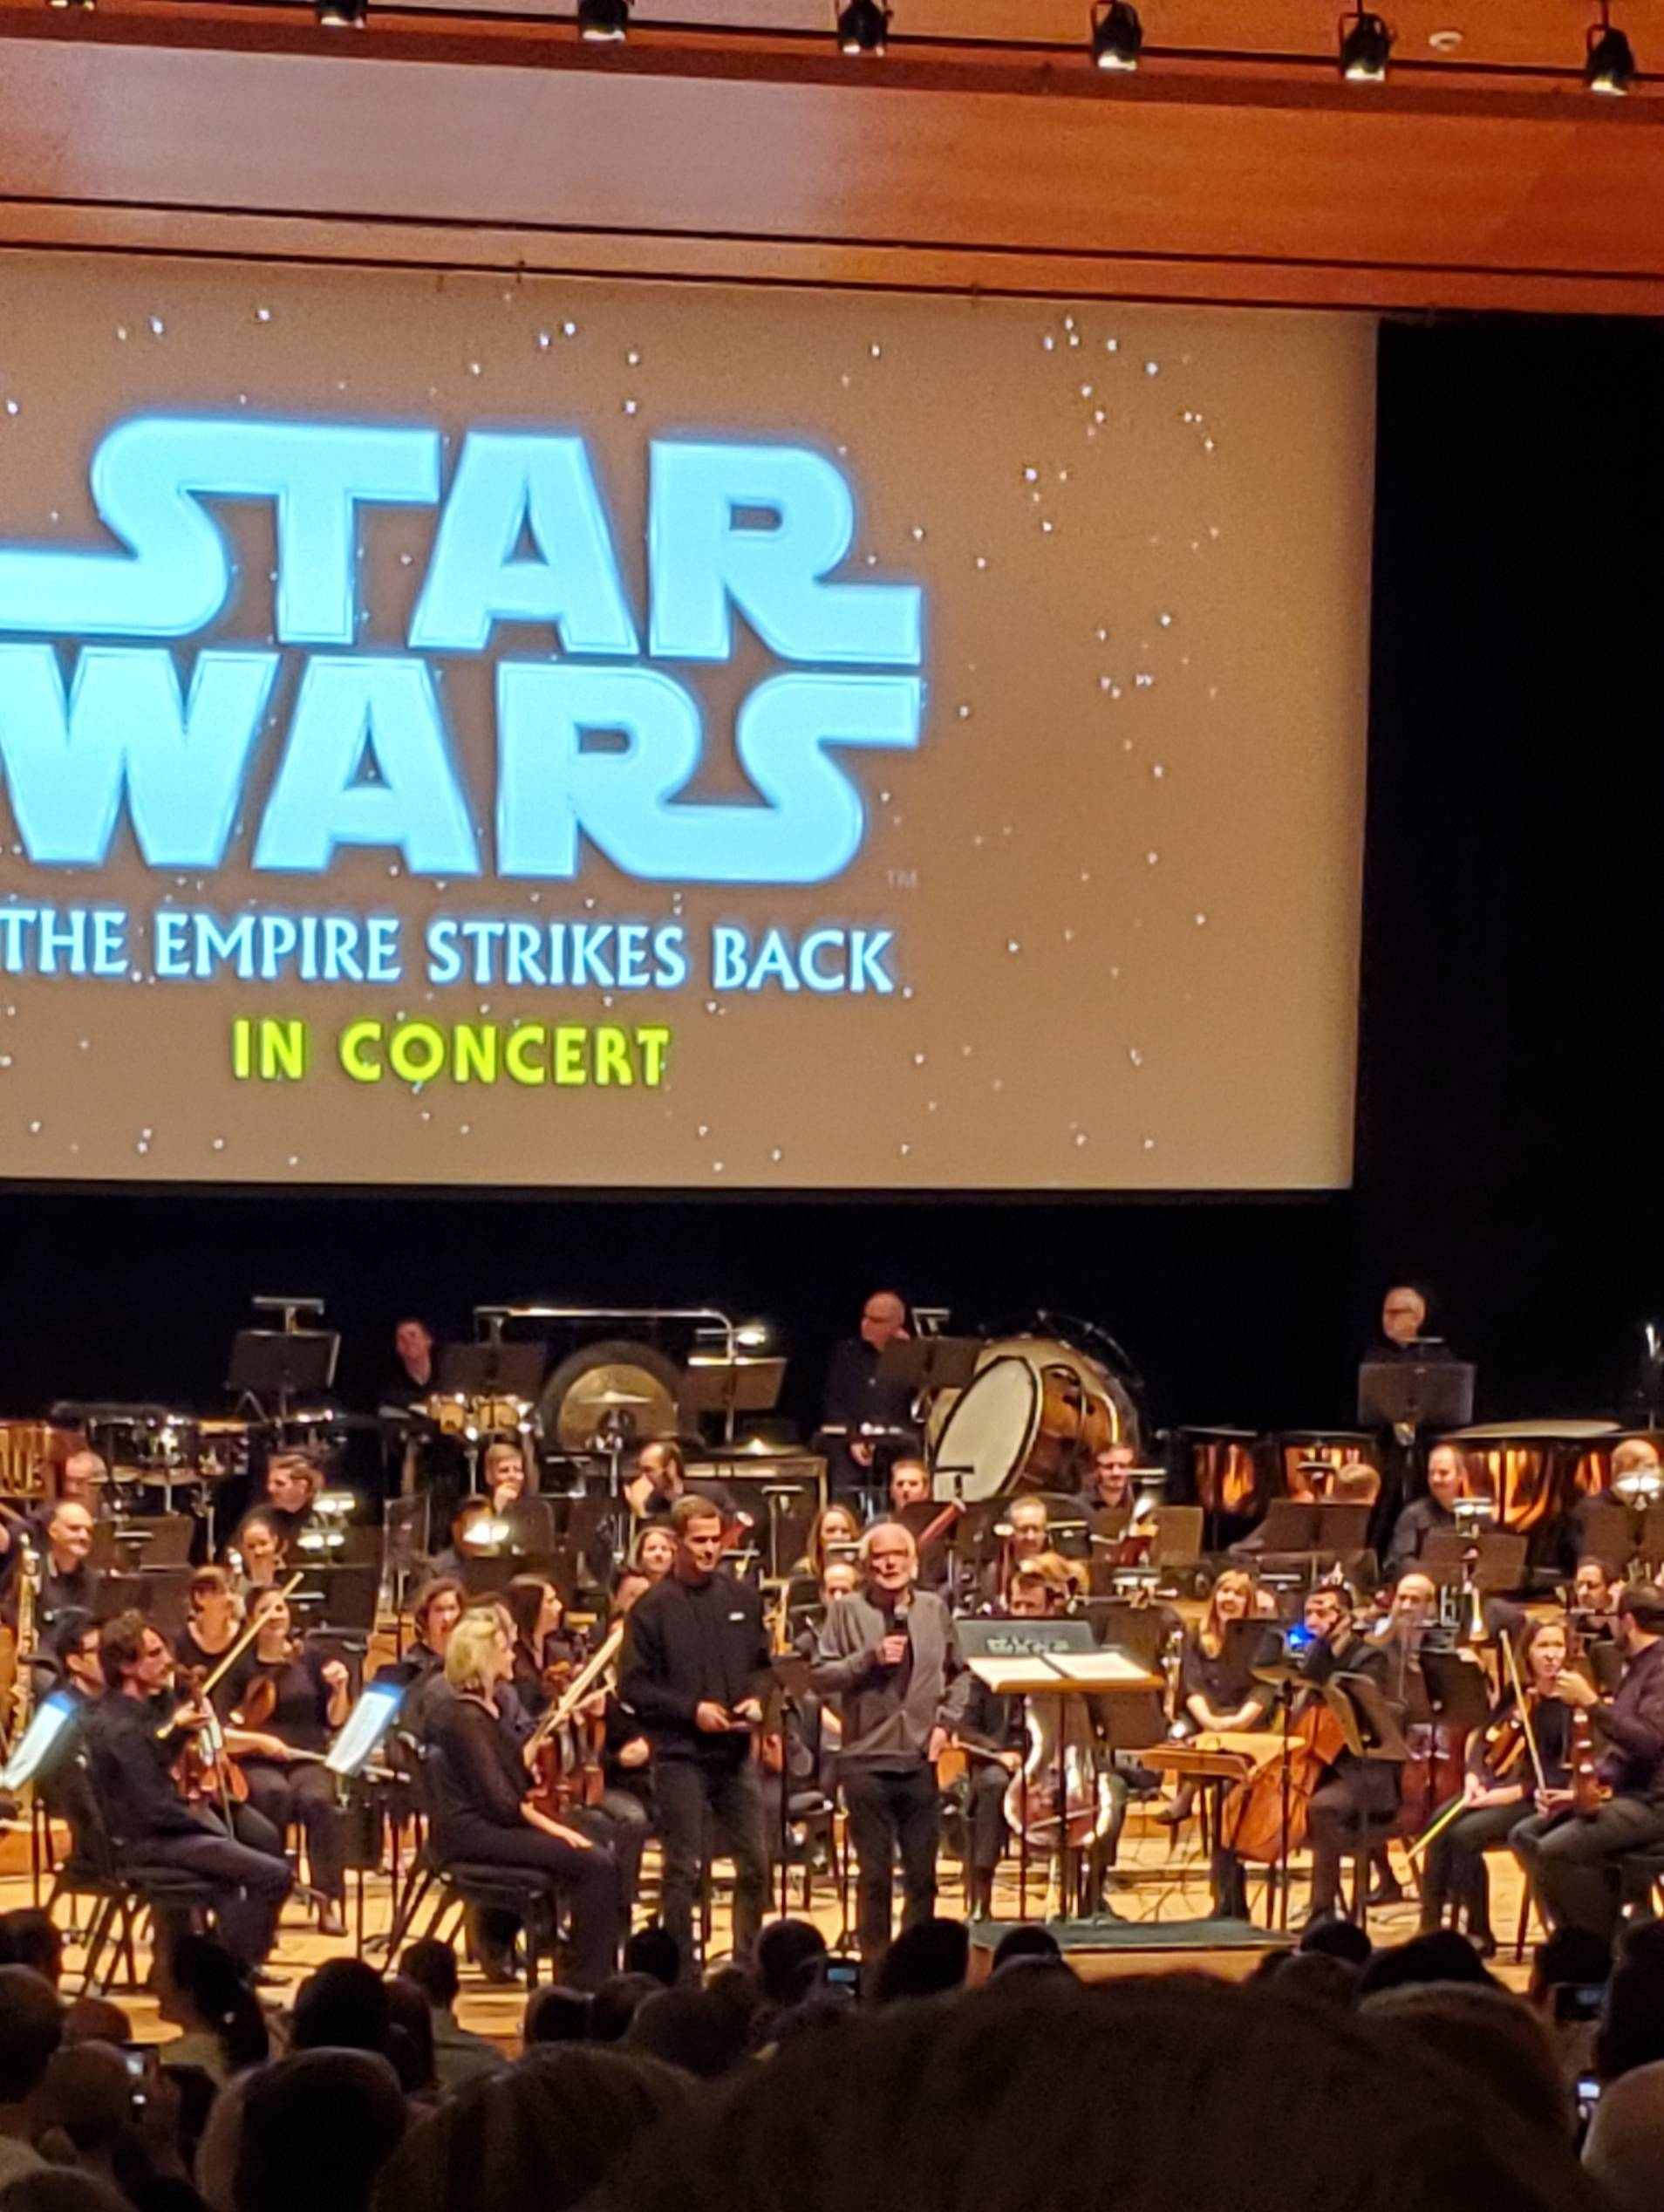 Ian McDiarmid and Hayden Christensen showed up to the Utah Symphony\'s Star Wars in concert